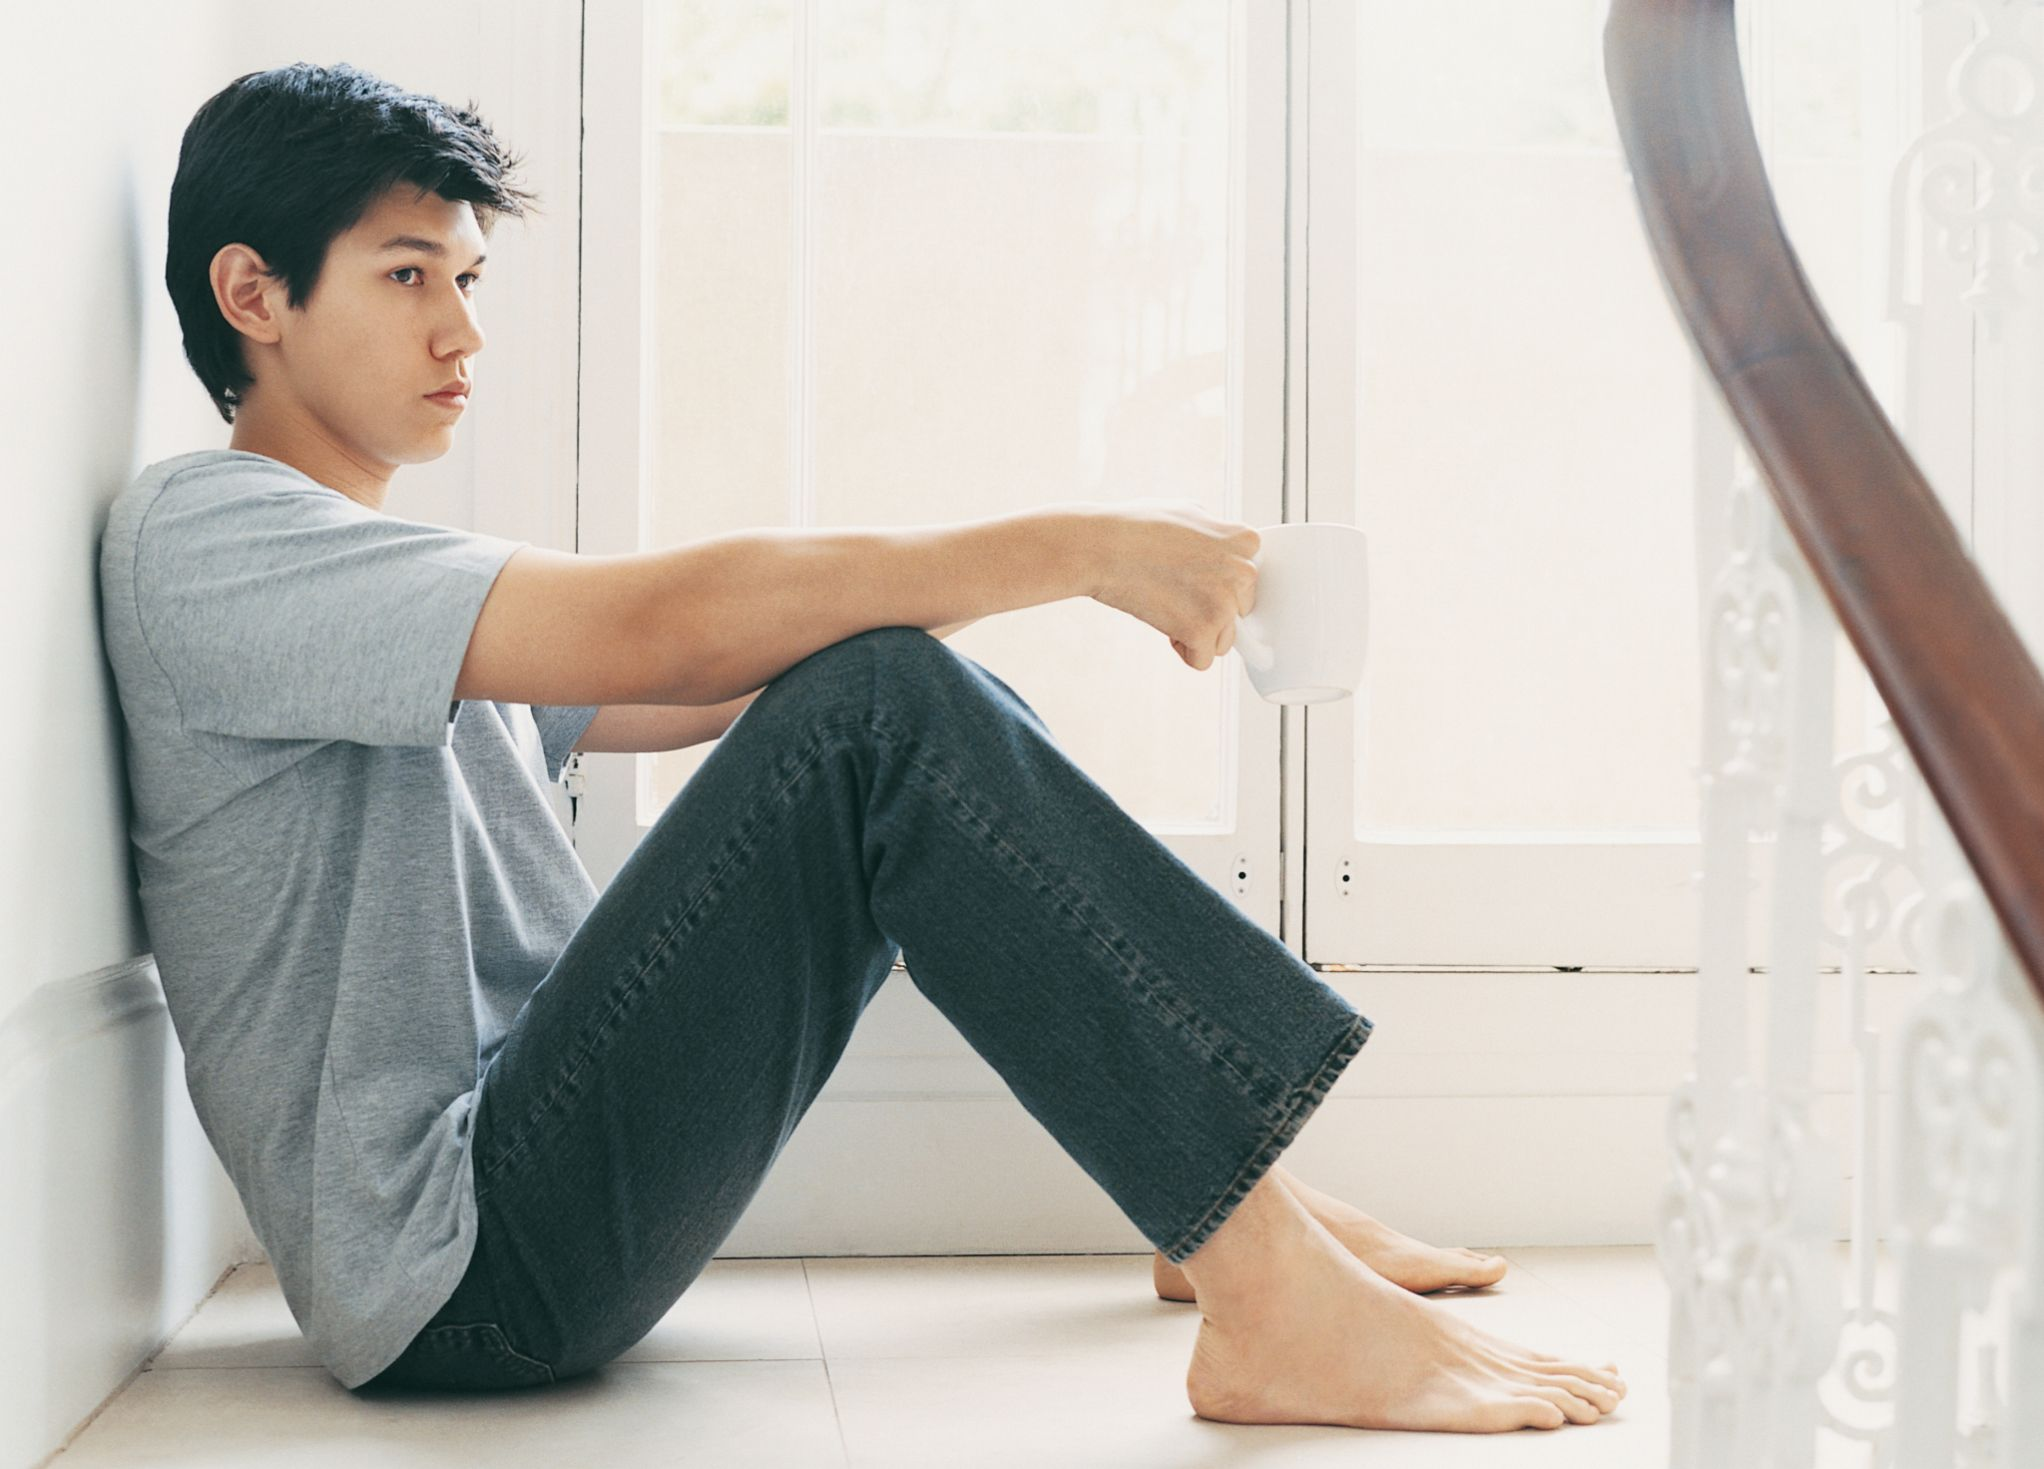 Man Sits On A Tiled Floor Leaning On A Wall Holding A Cup Sitting Poses Lean Men Bipolar Symptoms In Men